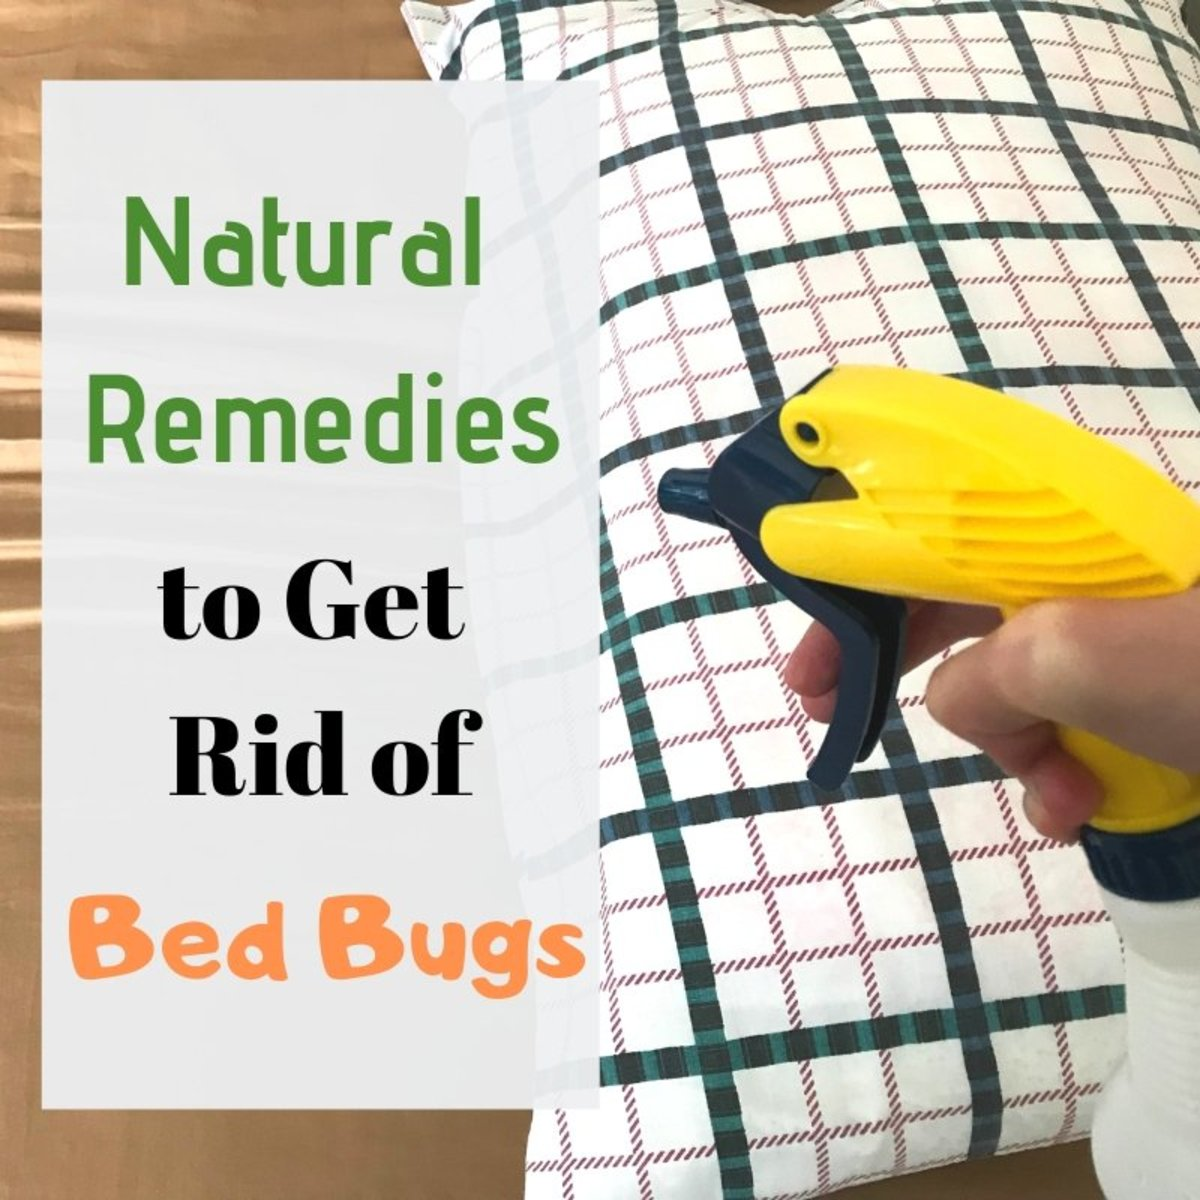 12 Home Remedies for Bed Bugs